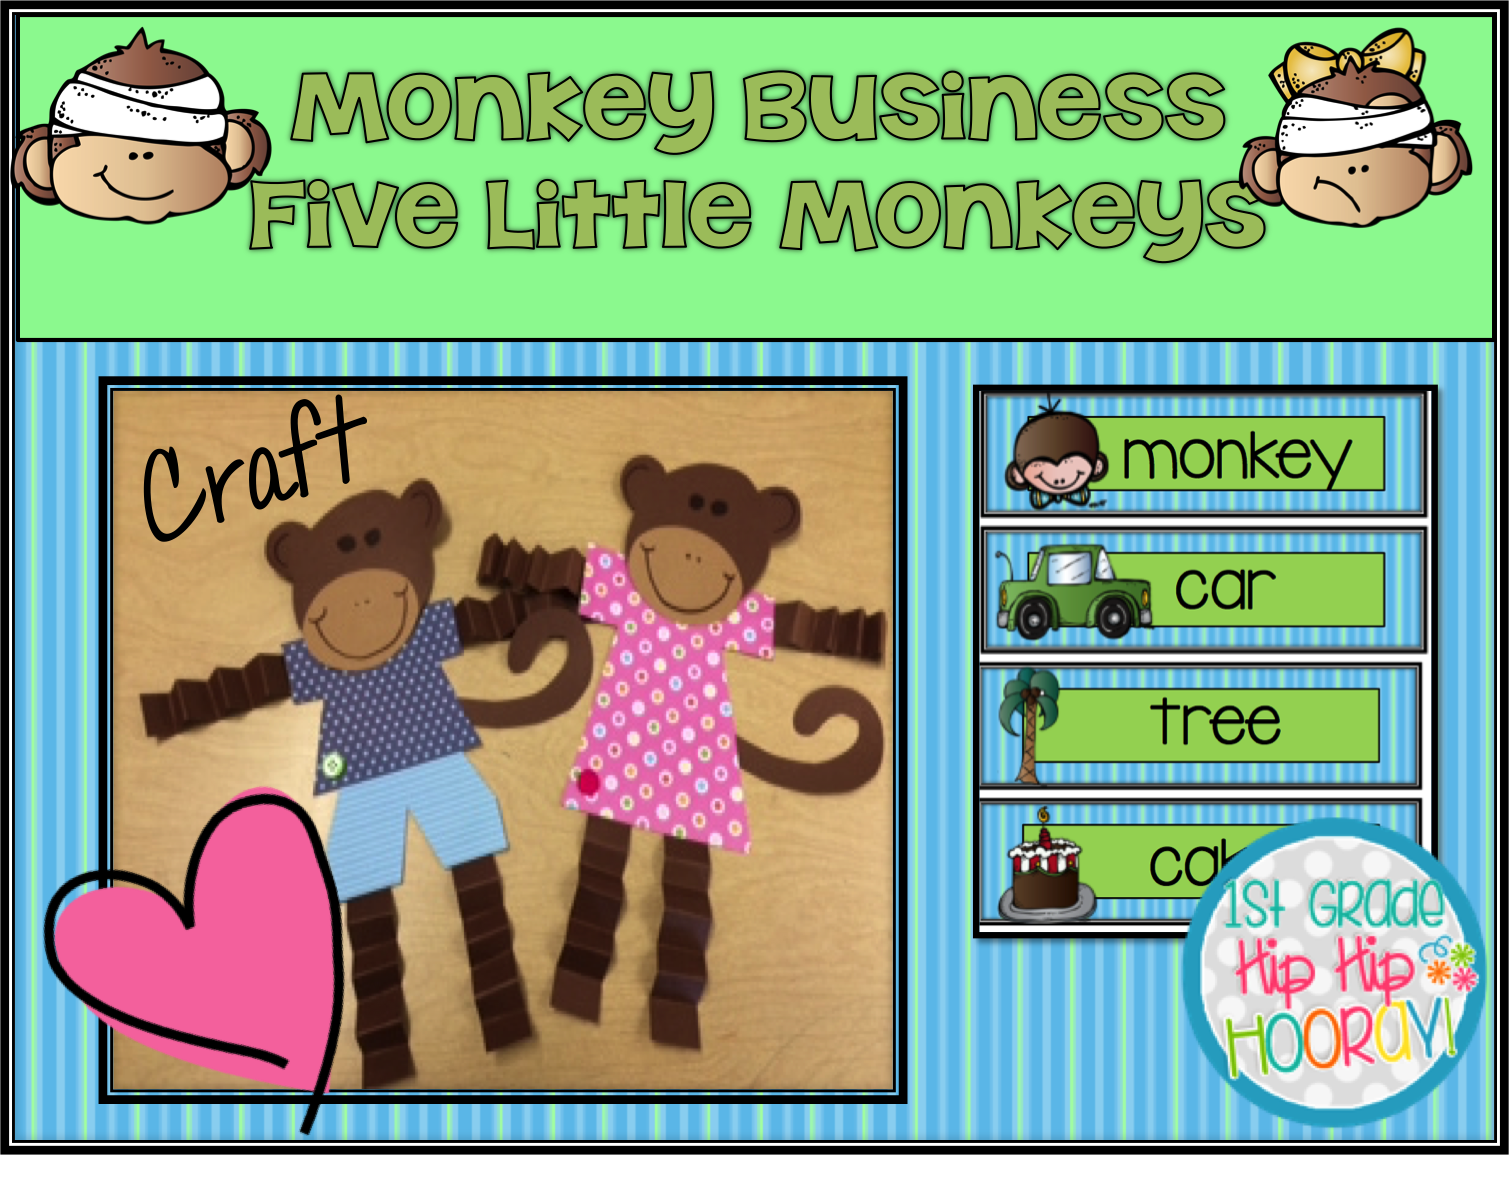 1st Grade Hip Hip Hooray Monkey Business With Five